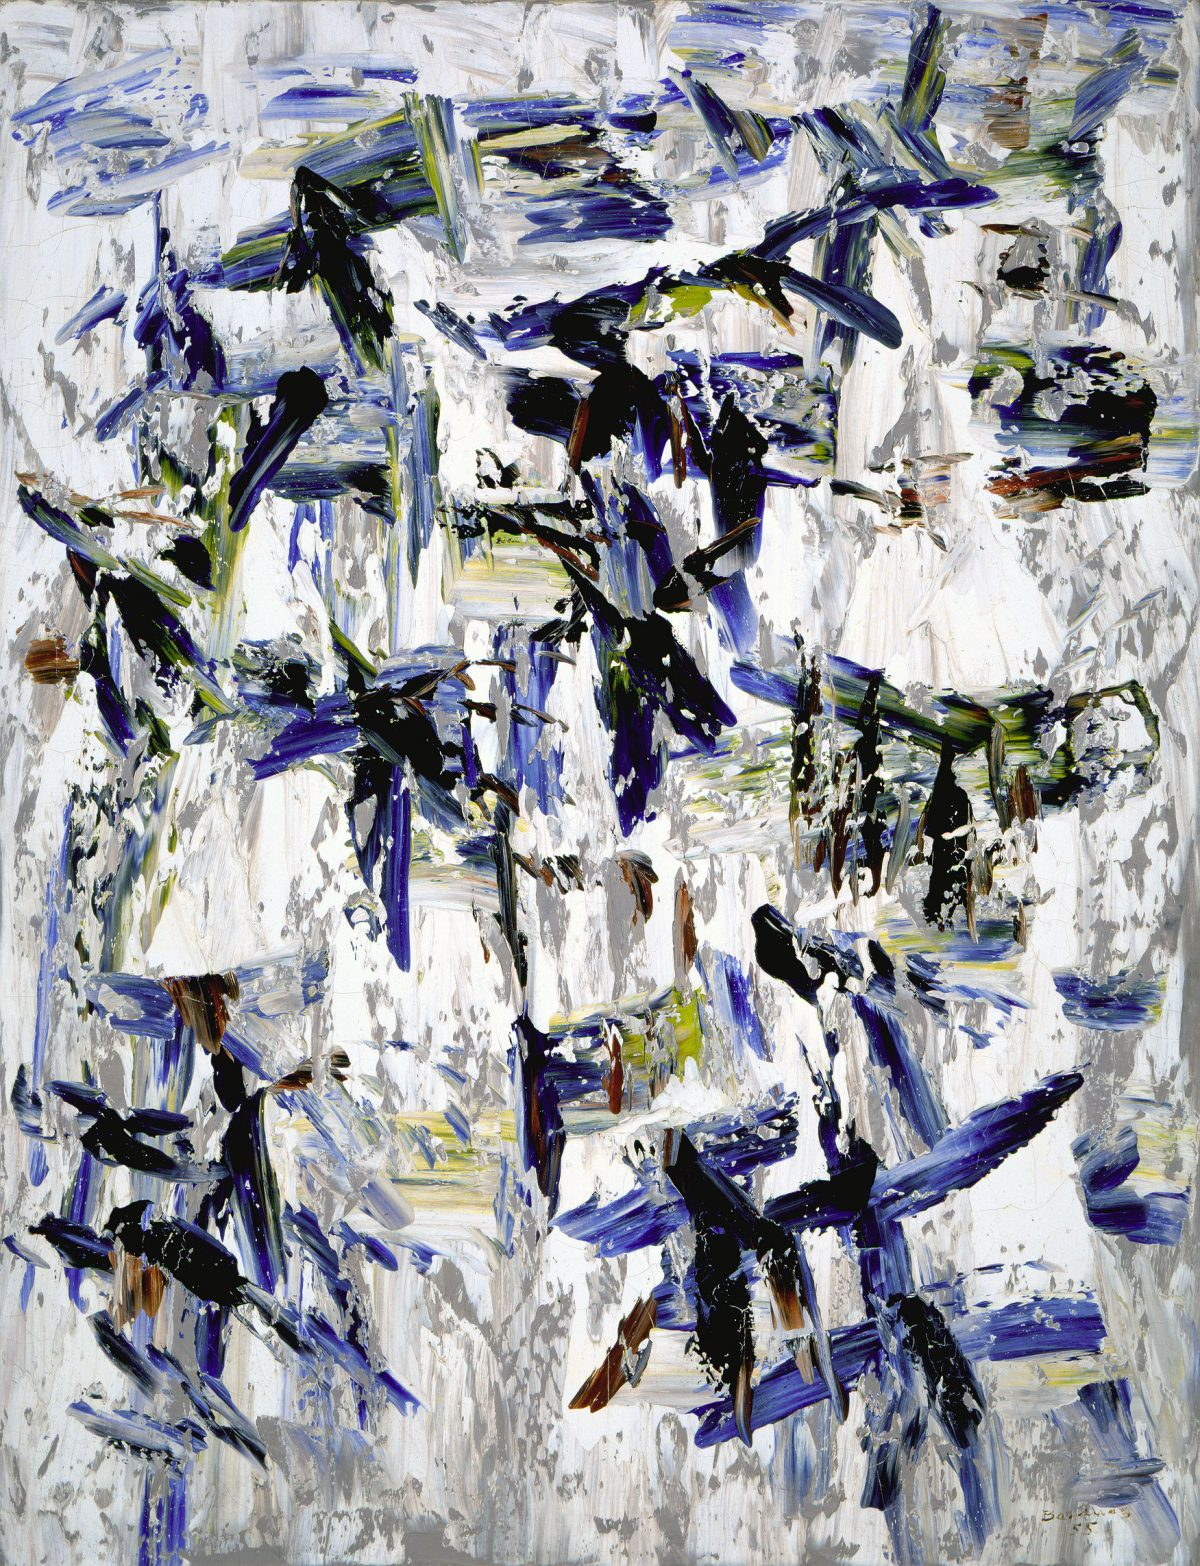 Cheminement bleu, 1955, Oil on canvas.